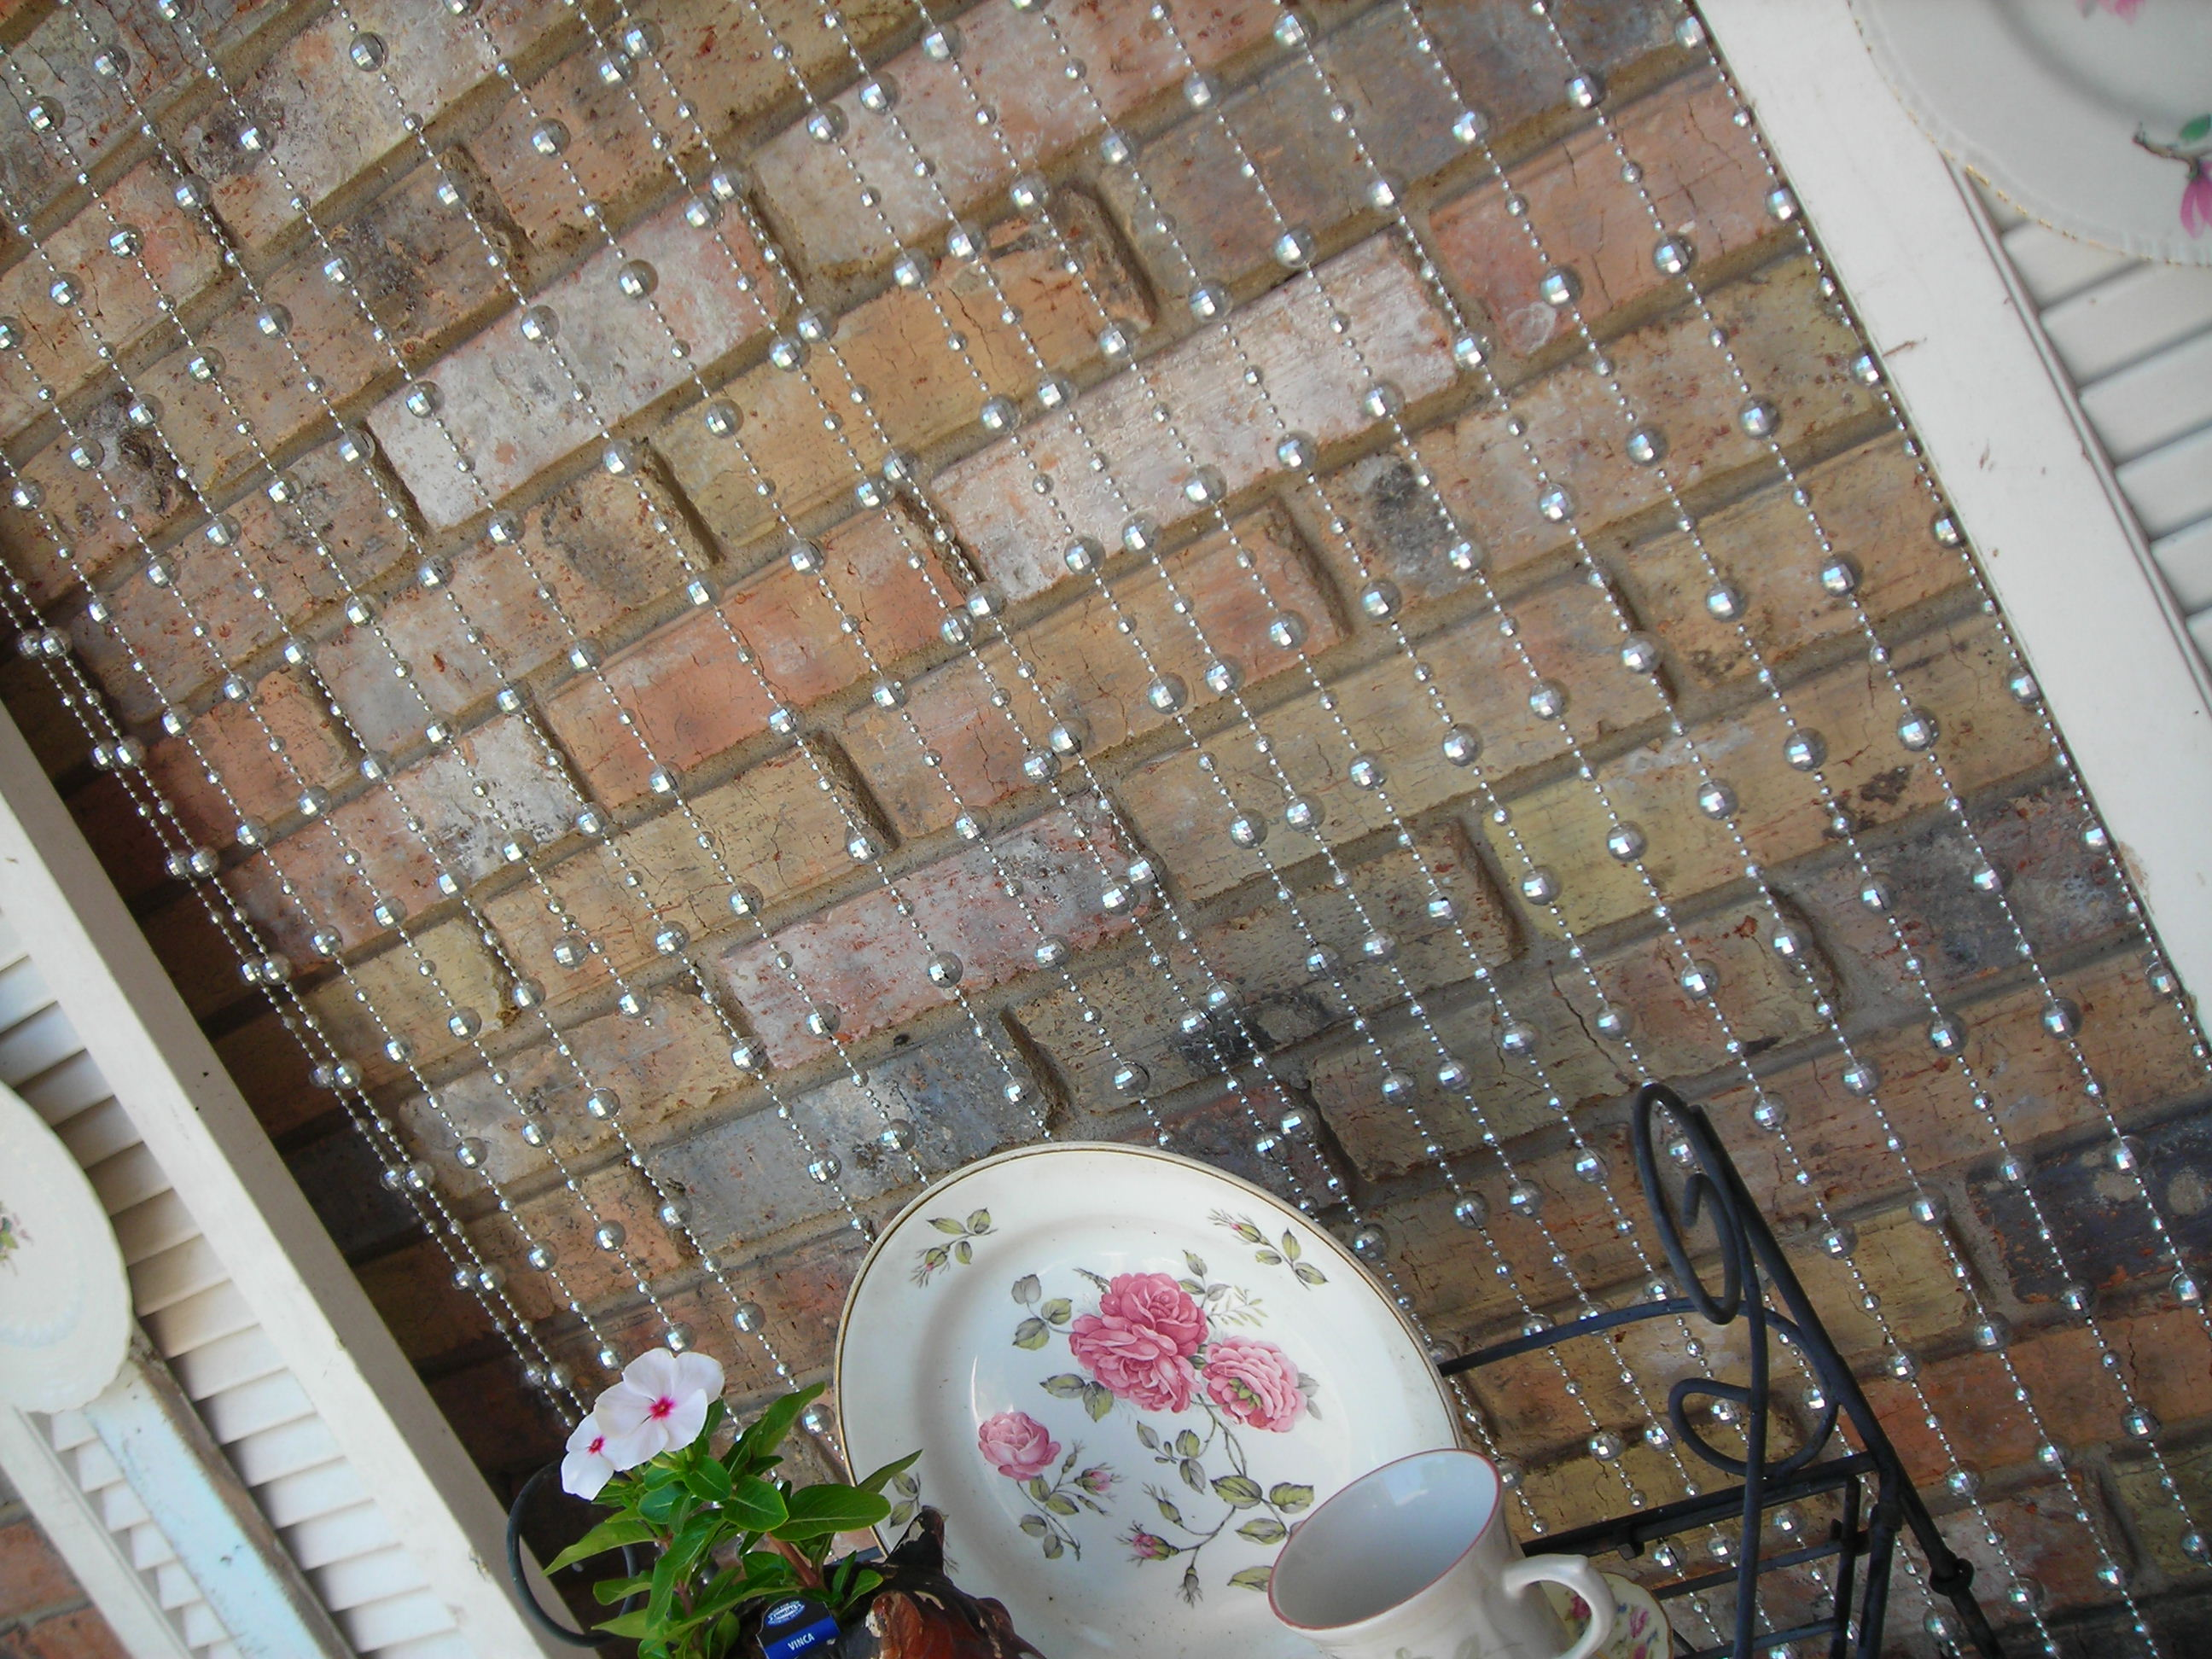 when the wind stirs the beads, it reminds me of raindrops. a perfect place for those silly 70s disco ball beads!